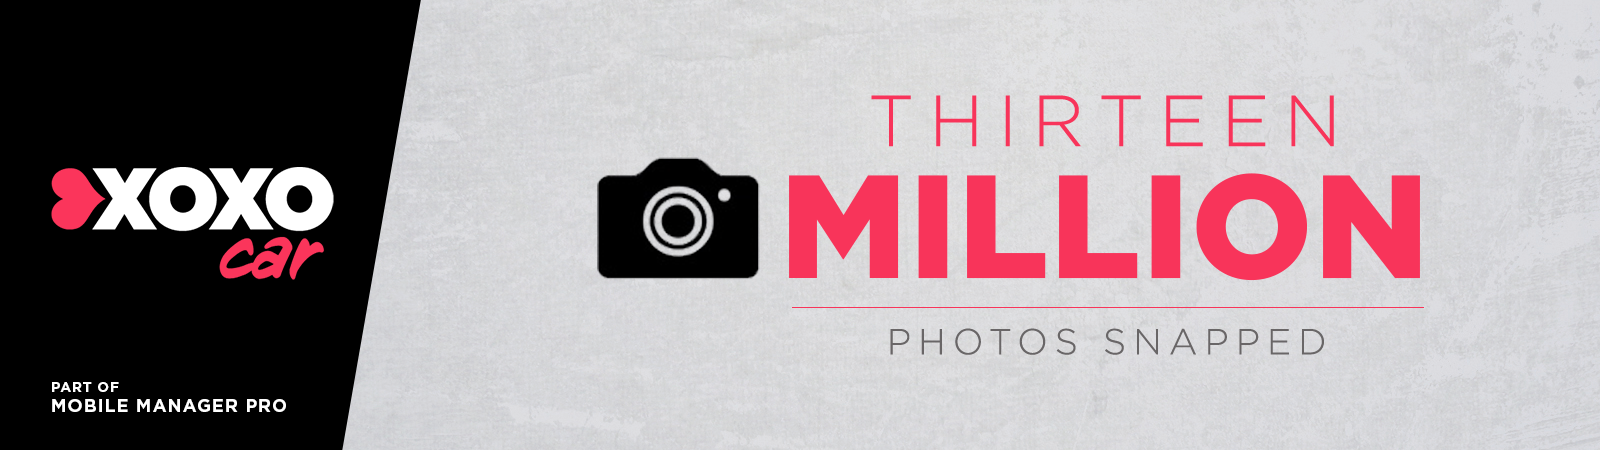 Whoa! 13 Million Photos Used to Sell More Services